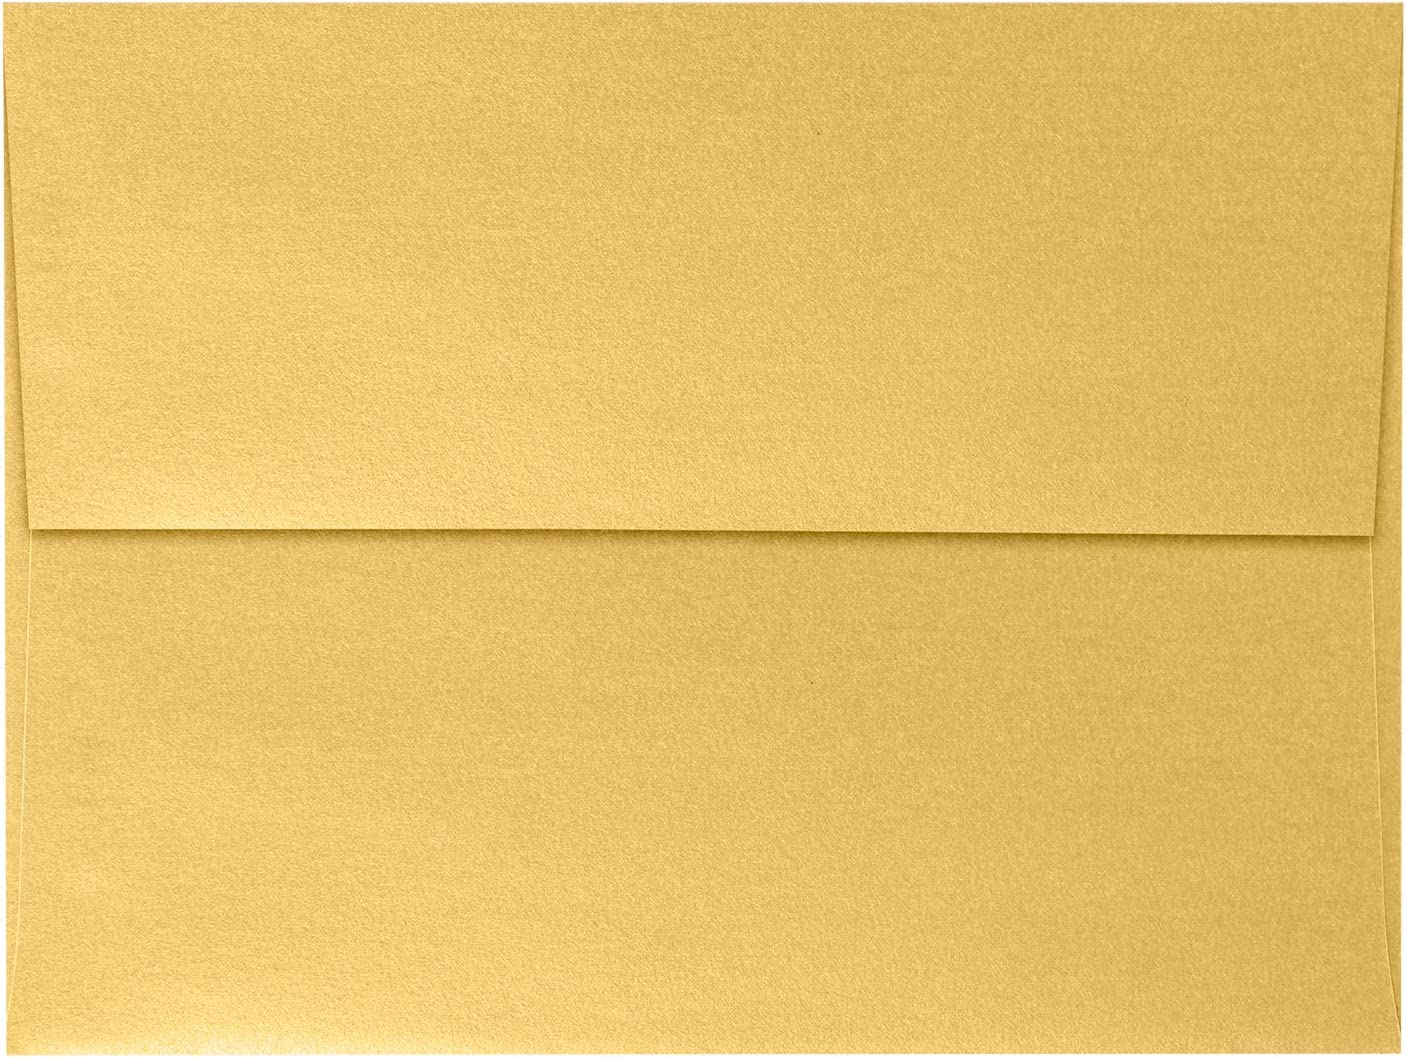 A7 Invitation Envelopes 5 Max 66% OFF 1 4 x Metallic Gold 50 7 Sale Special Price Qty -